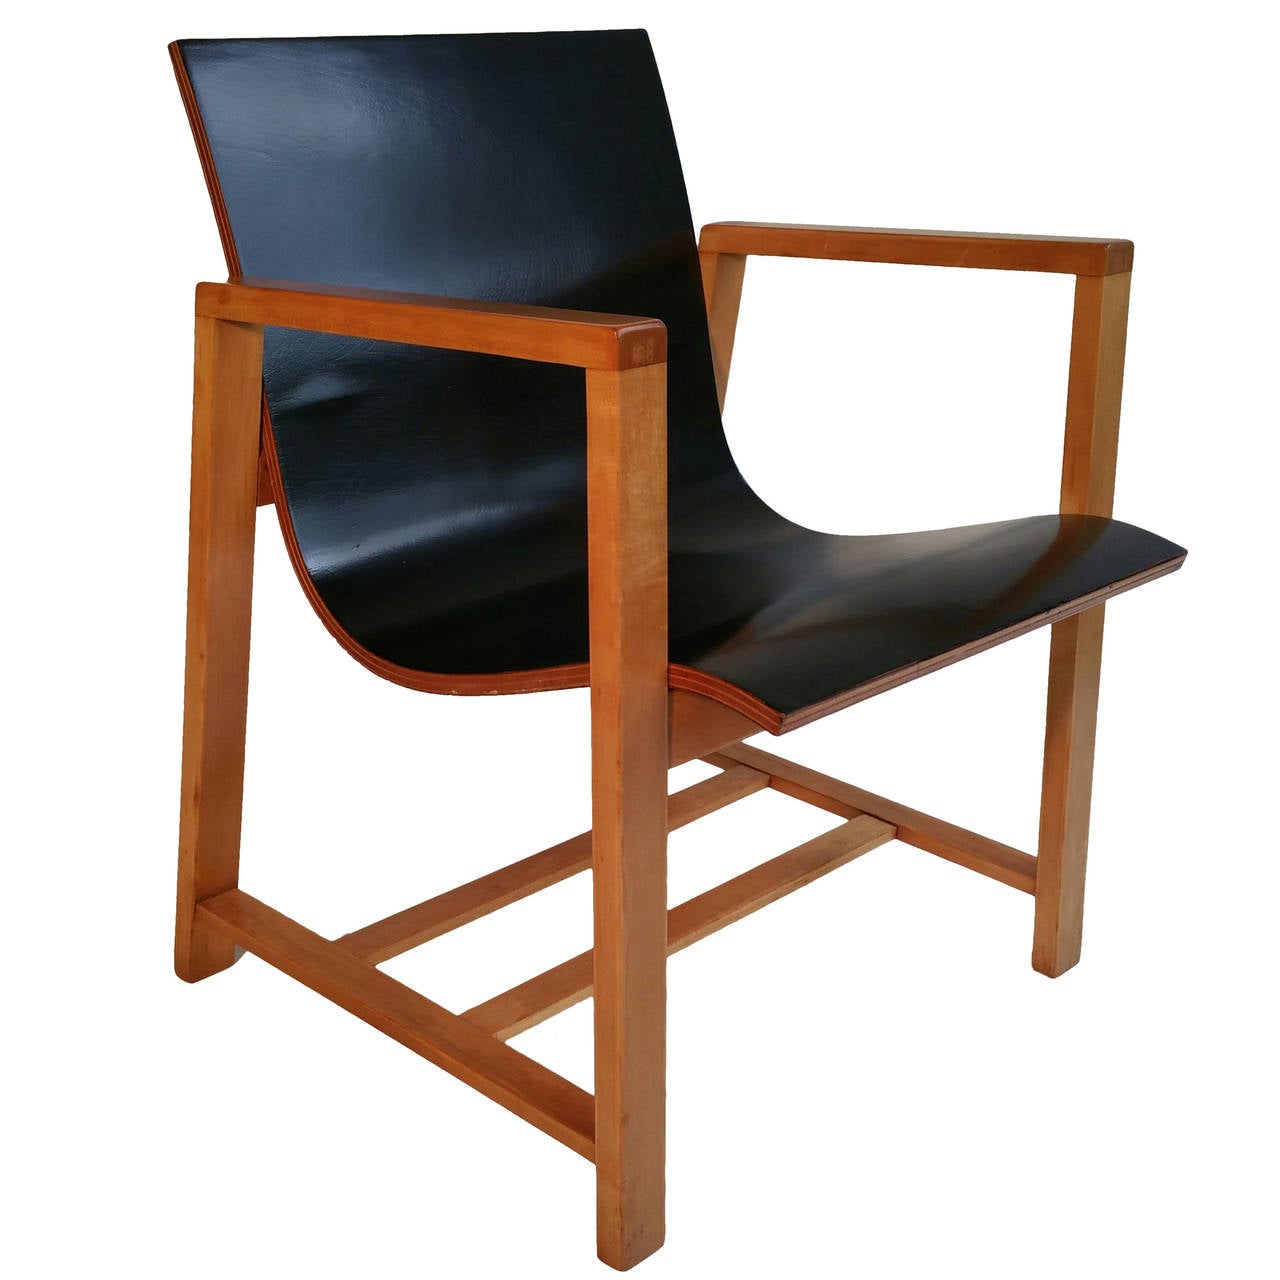 Rare Quot Kleinhans Quot Chair C 1939 Charles Eames Eero